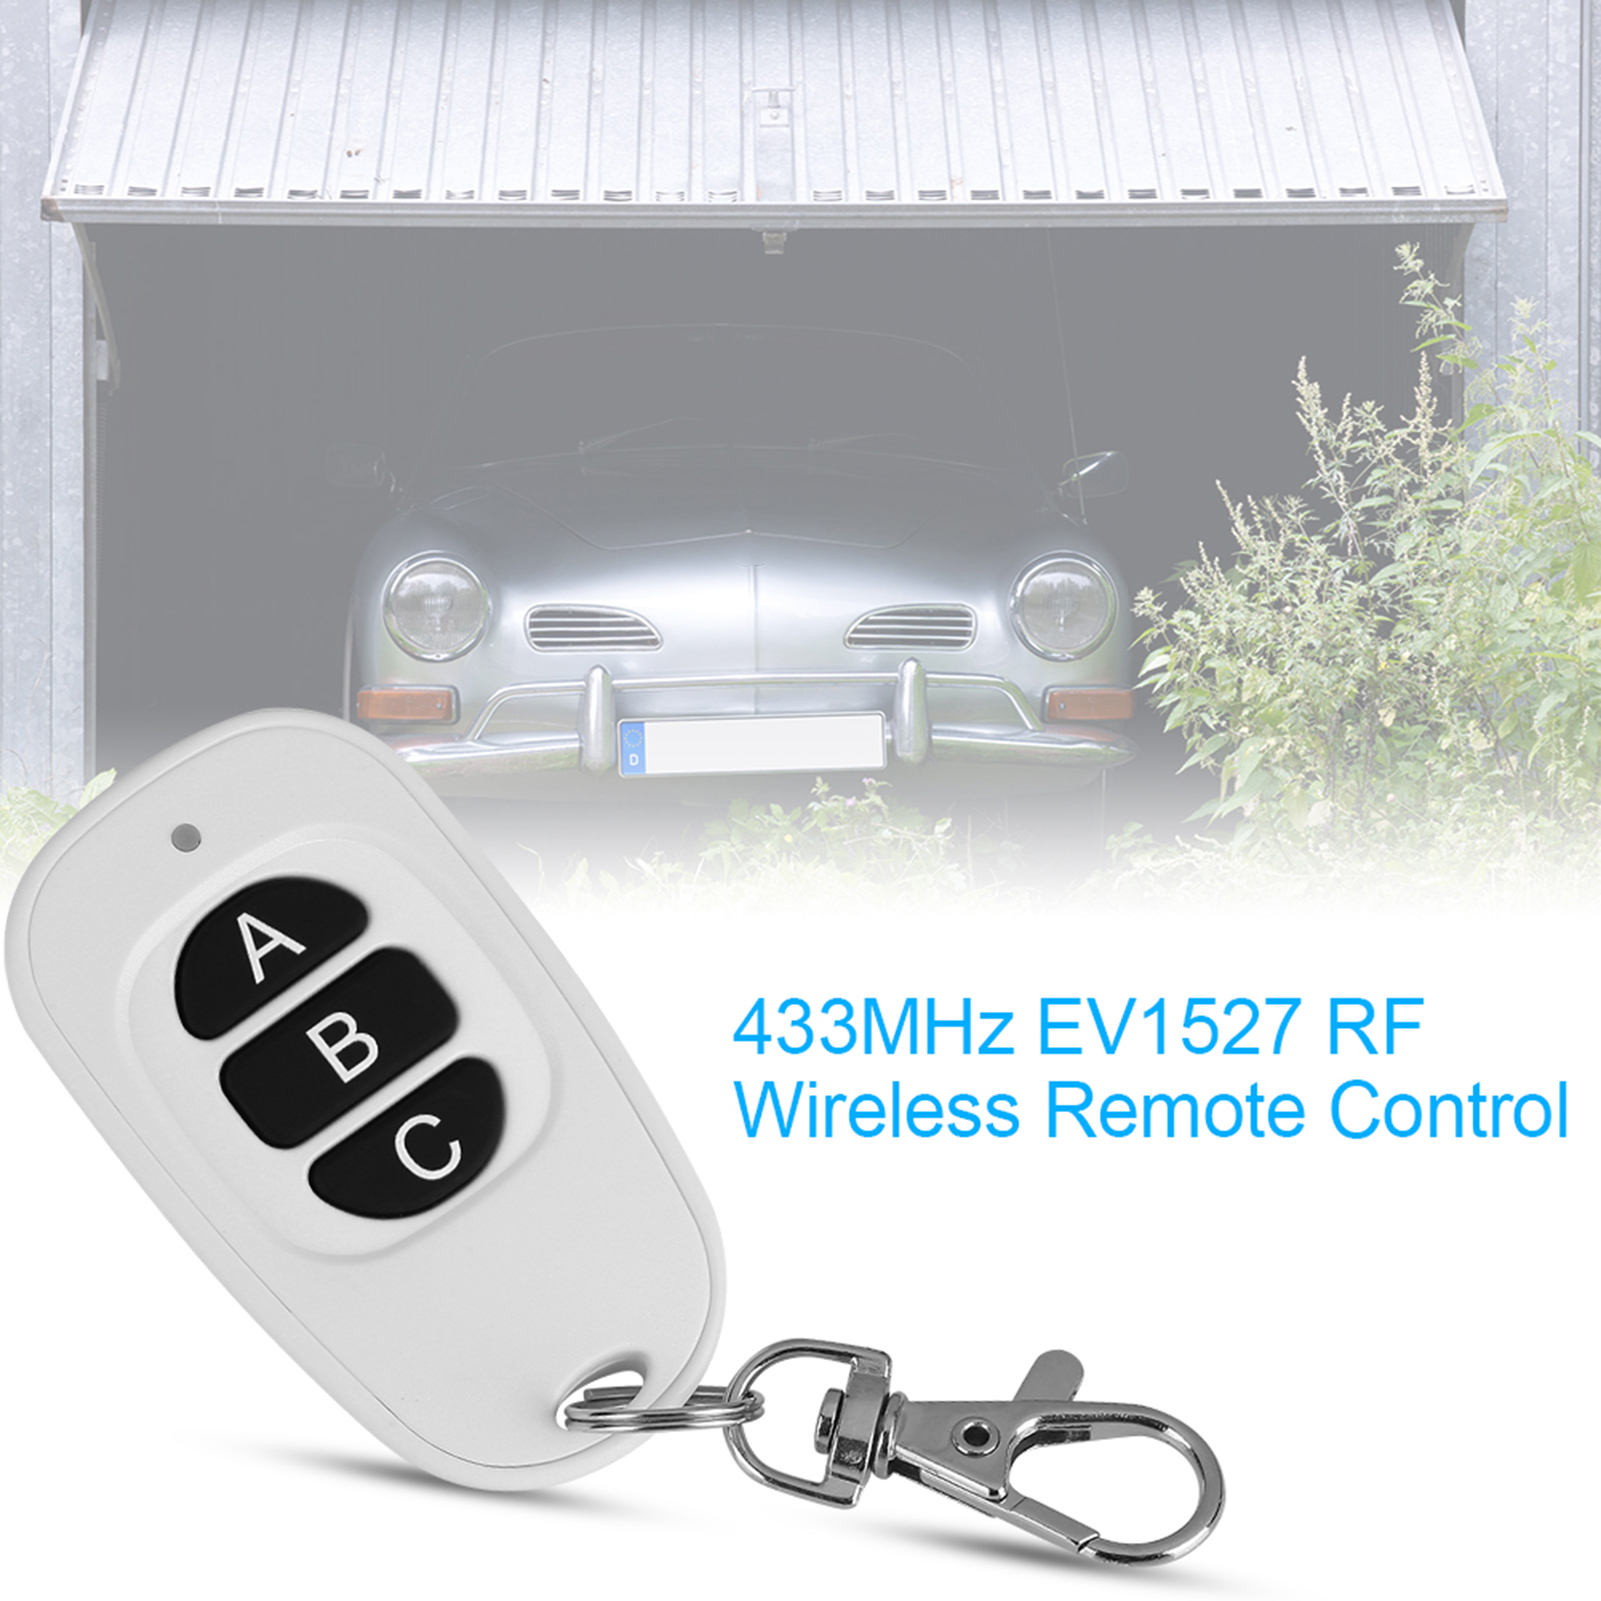 433MHz-EV1527-RF-Wireless-Transmitter-Garage-Door-1-4-Channel-Key-Remote-Control miniature 38